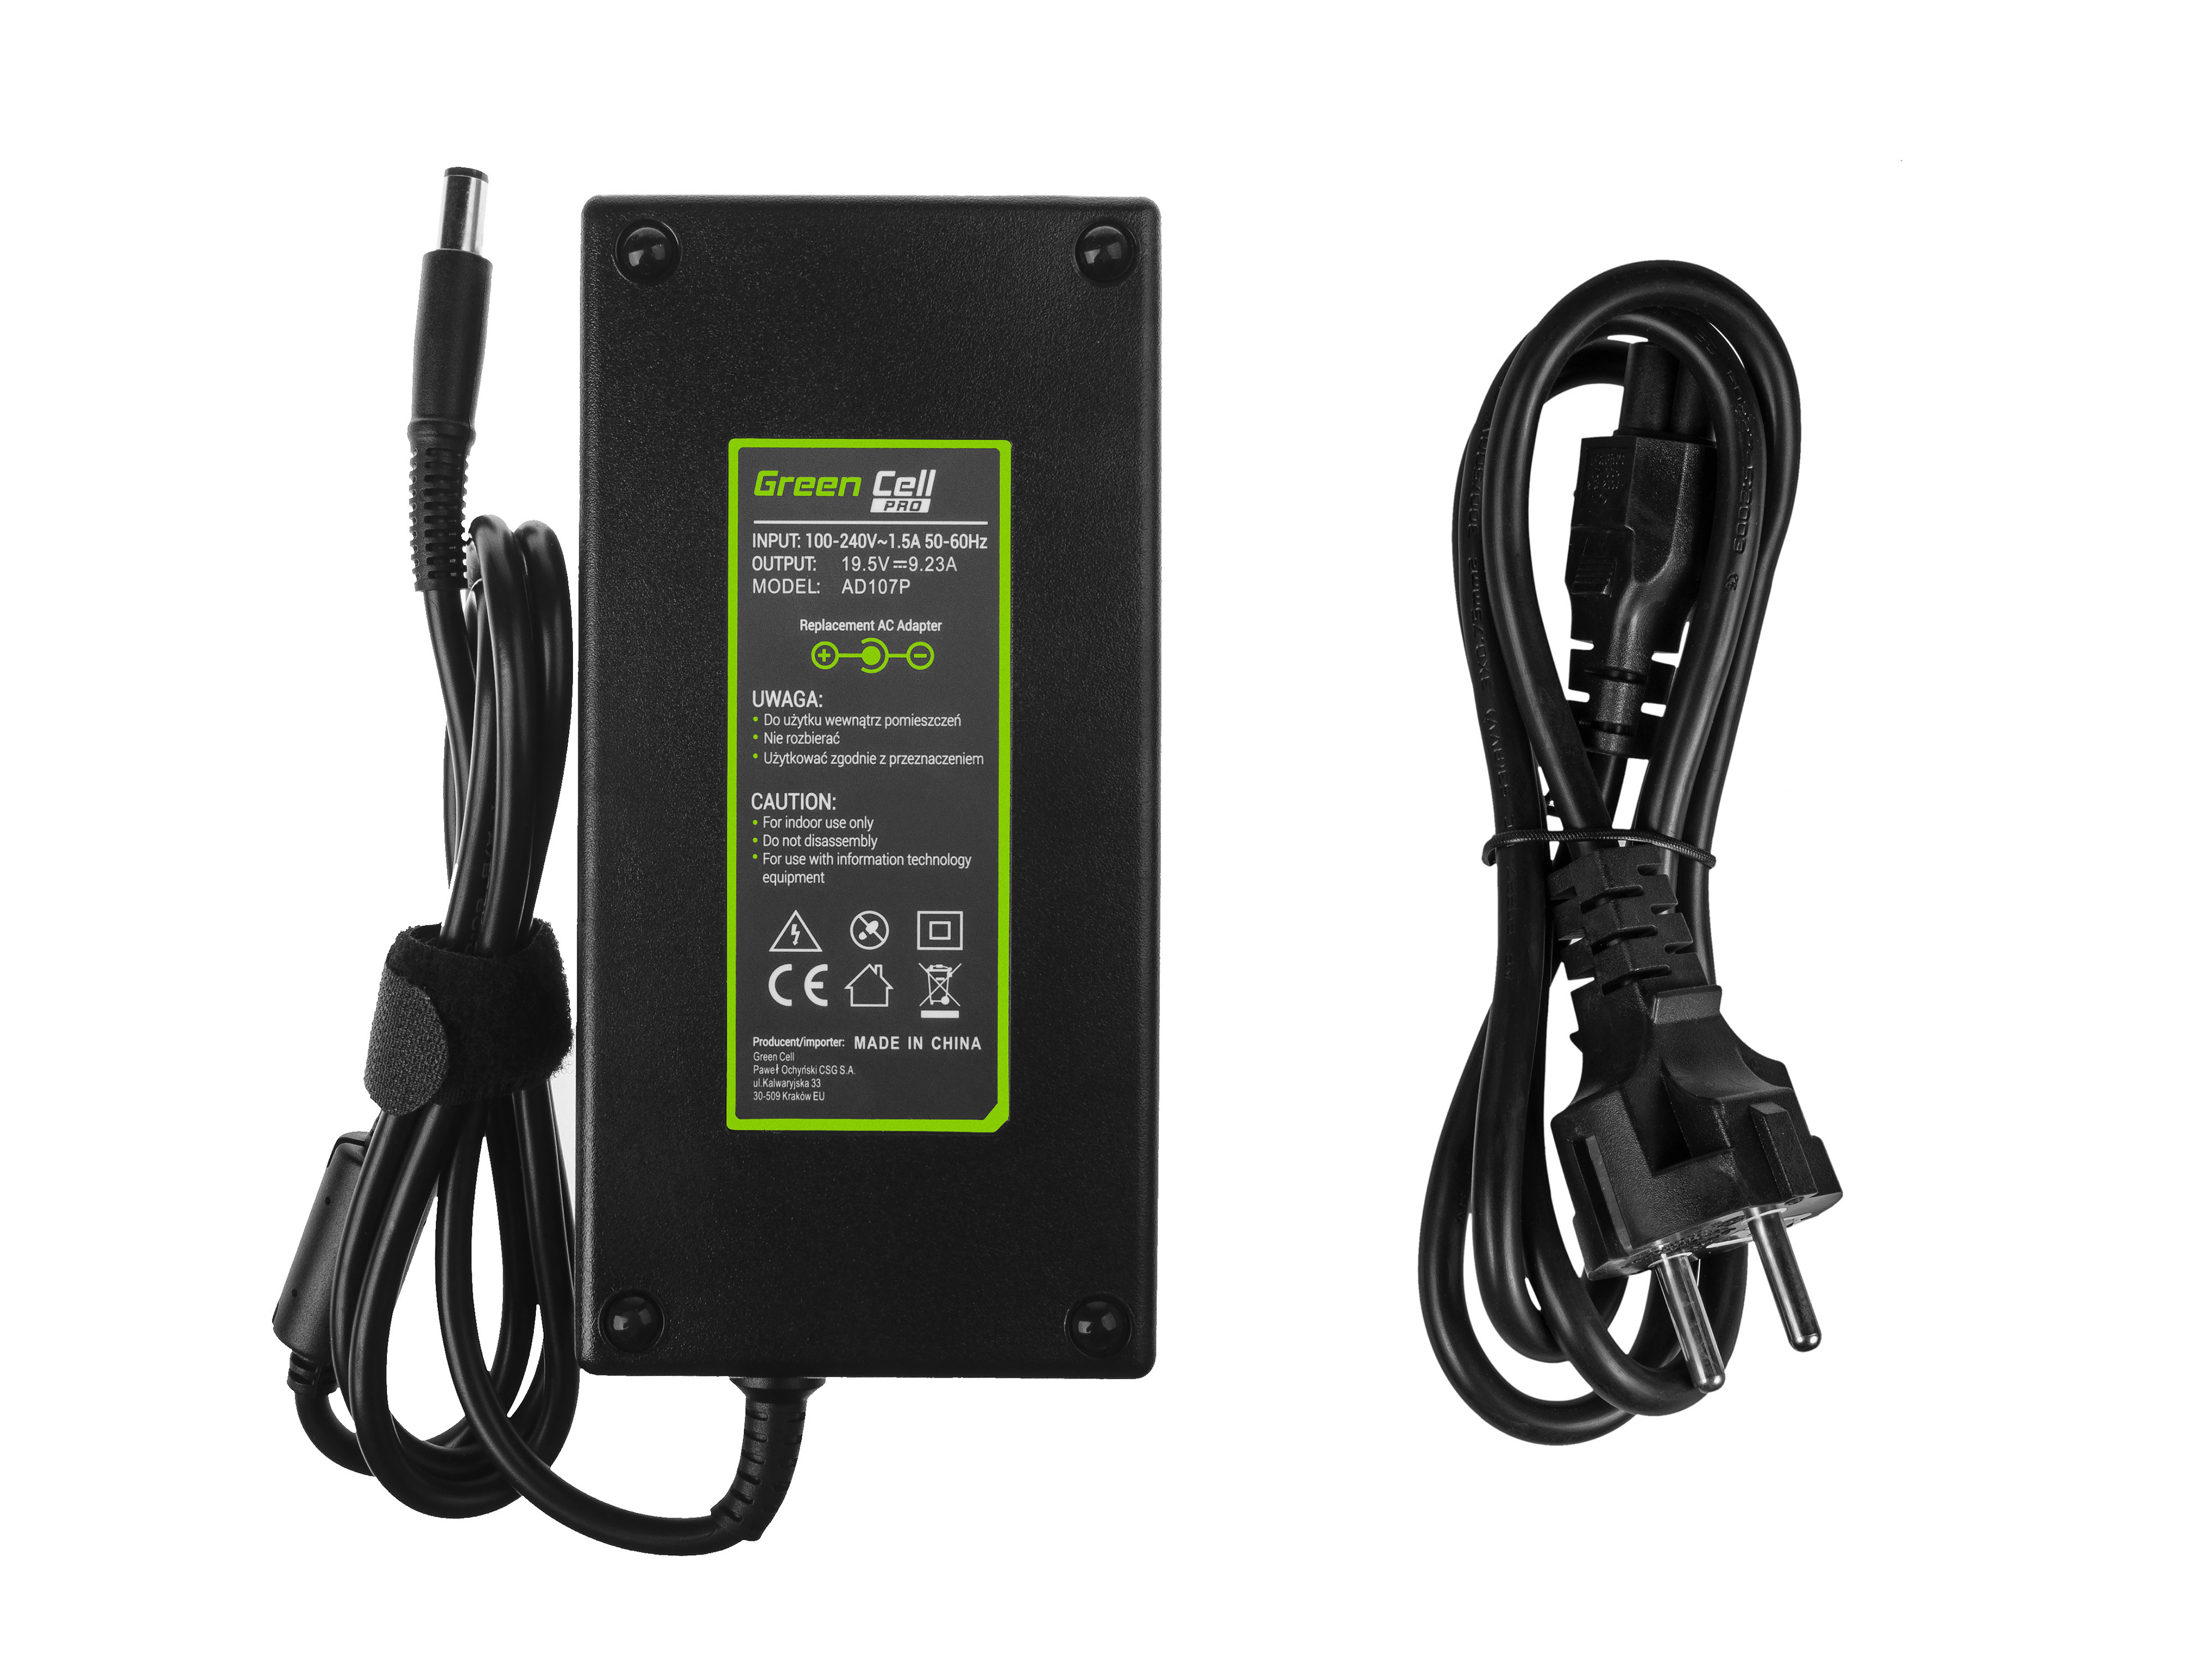 Green Cell PRO Charger  AC Adapter for Dell Latitude E5510 E7240 E7440 Alienware 13 14 15 M14x M15x R1 R2 R3 19.5V 9.23A 180W